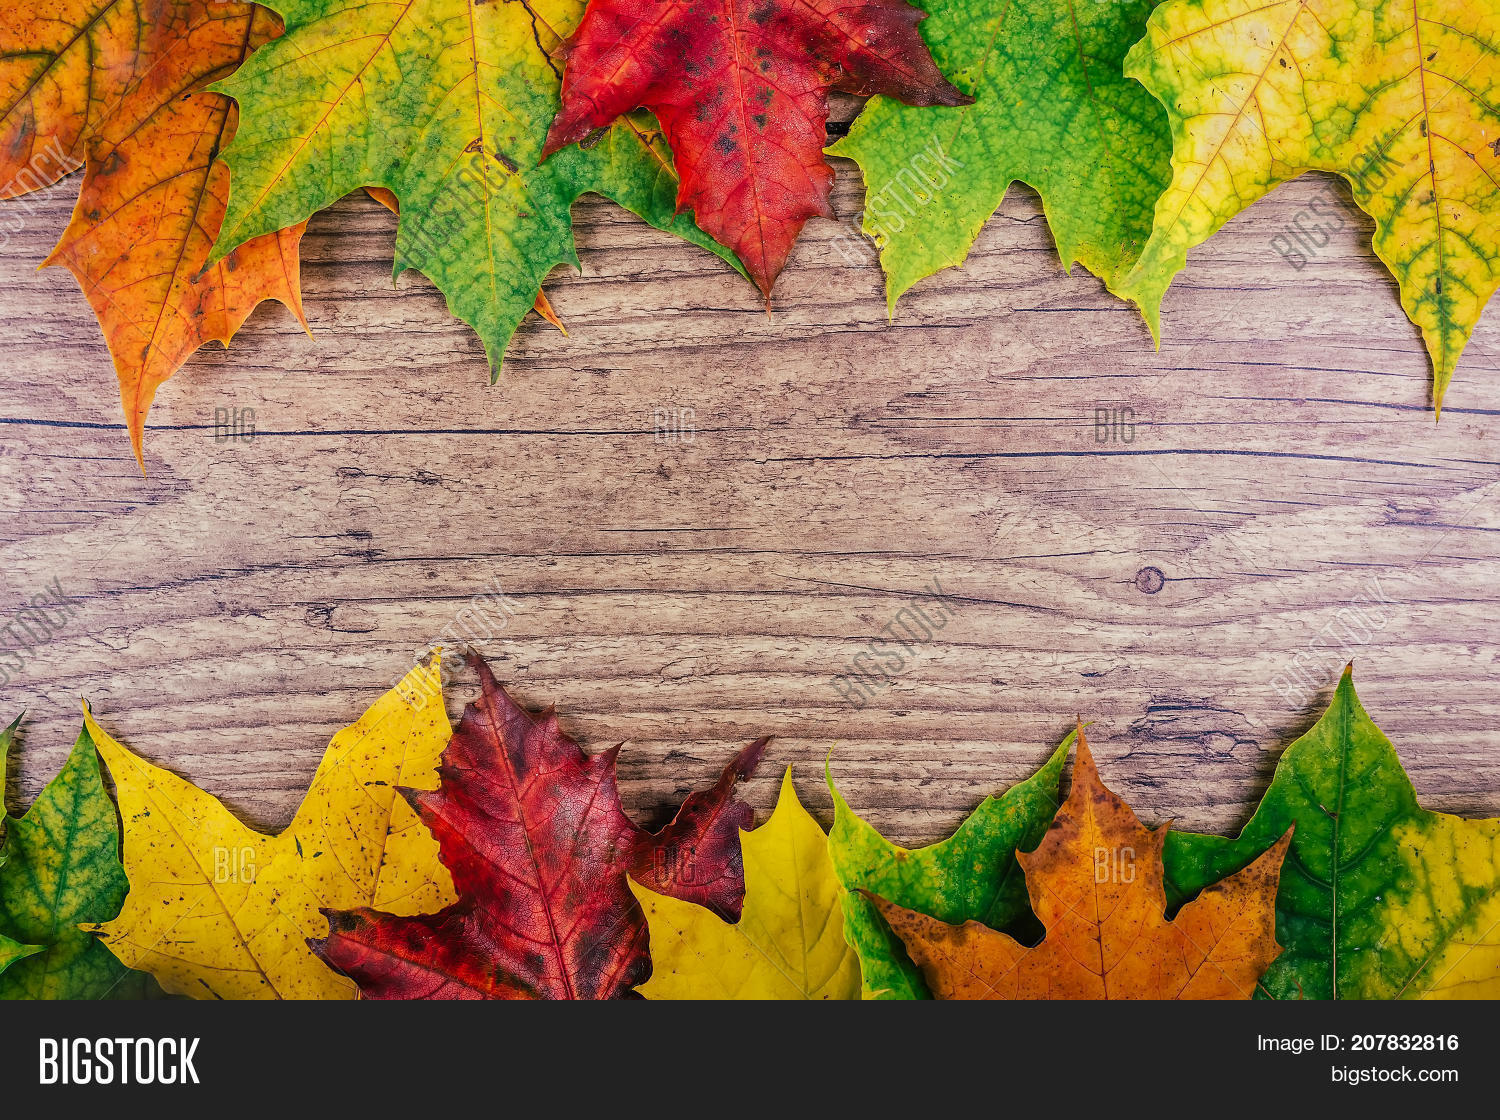 Autumn Background With Colorful Fall Maple Leaves On Rustic Wooden Table